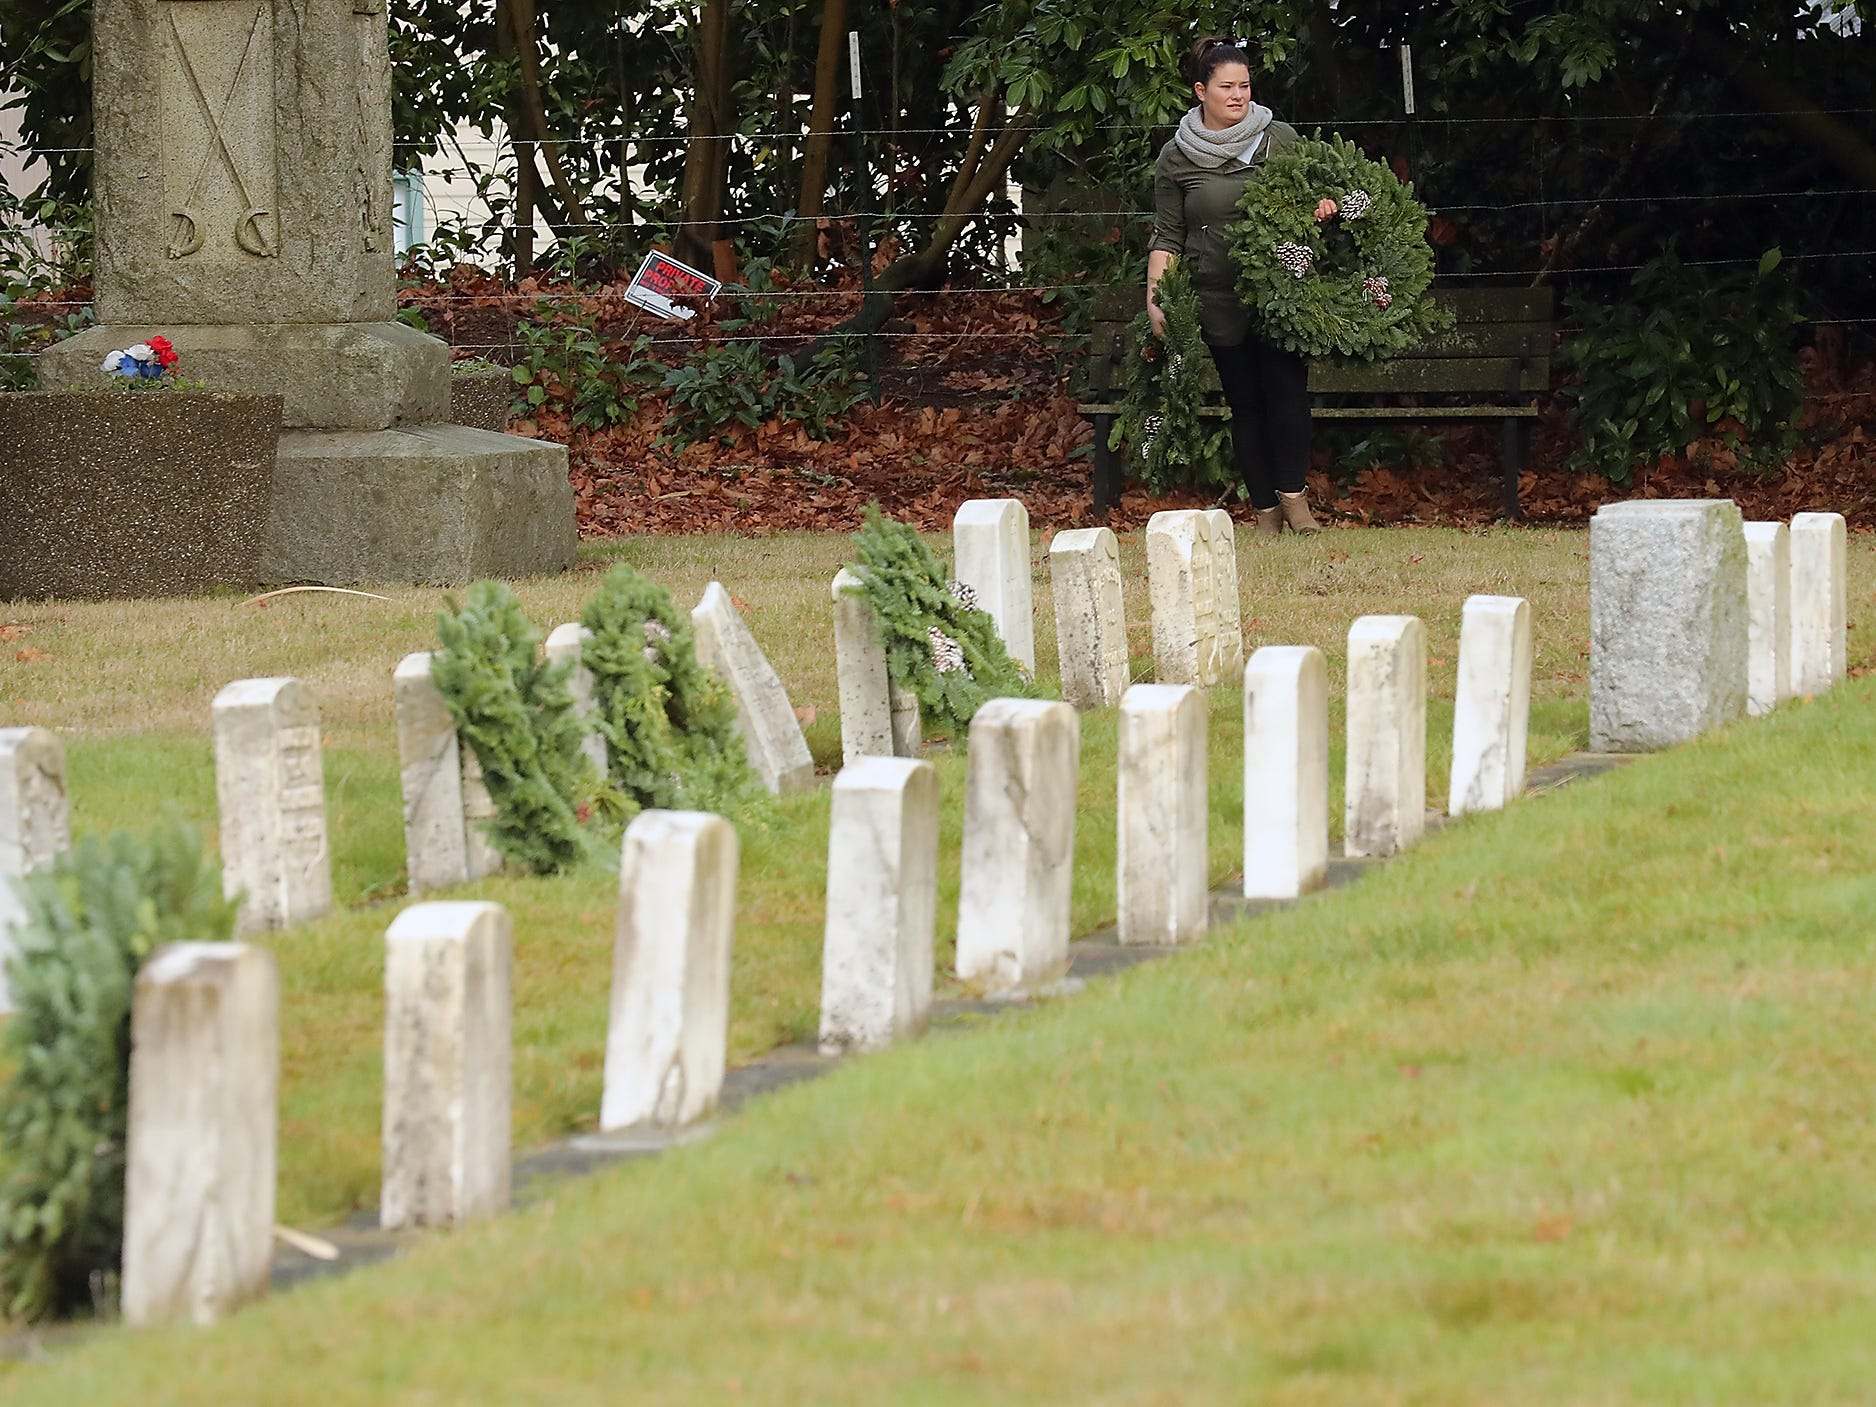 Jessica Rossiter looks for open headstones of veterans to place the final few wreaths on during the Washington Veterans Home Cemetery in Port Orchard on Saturday, December 15, 2018.